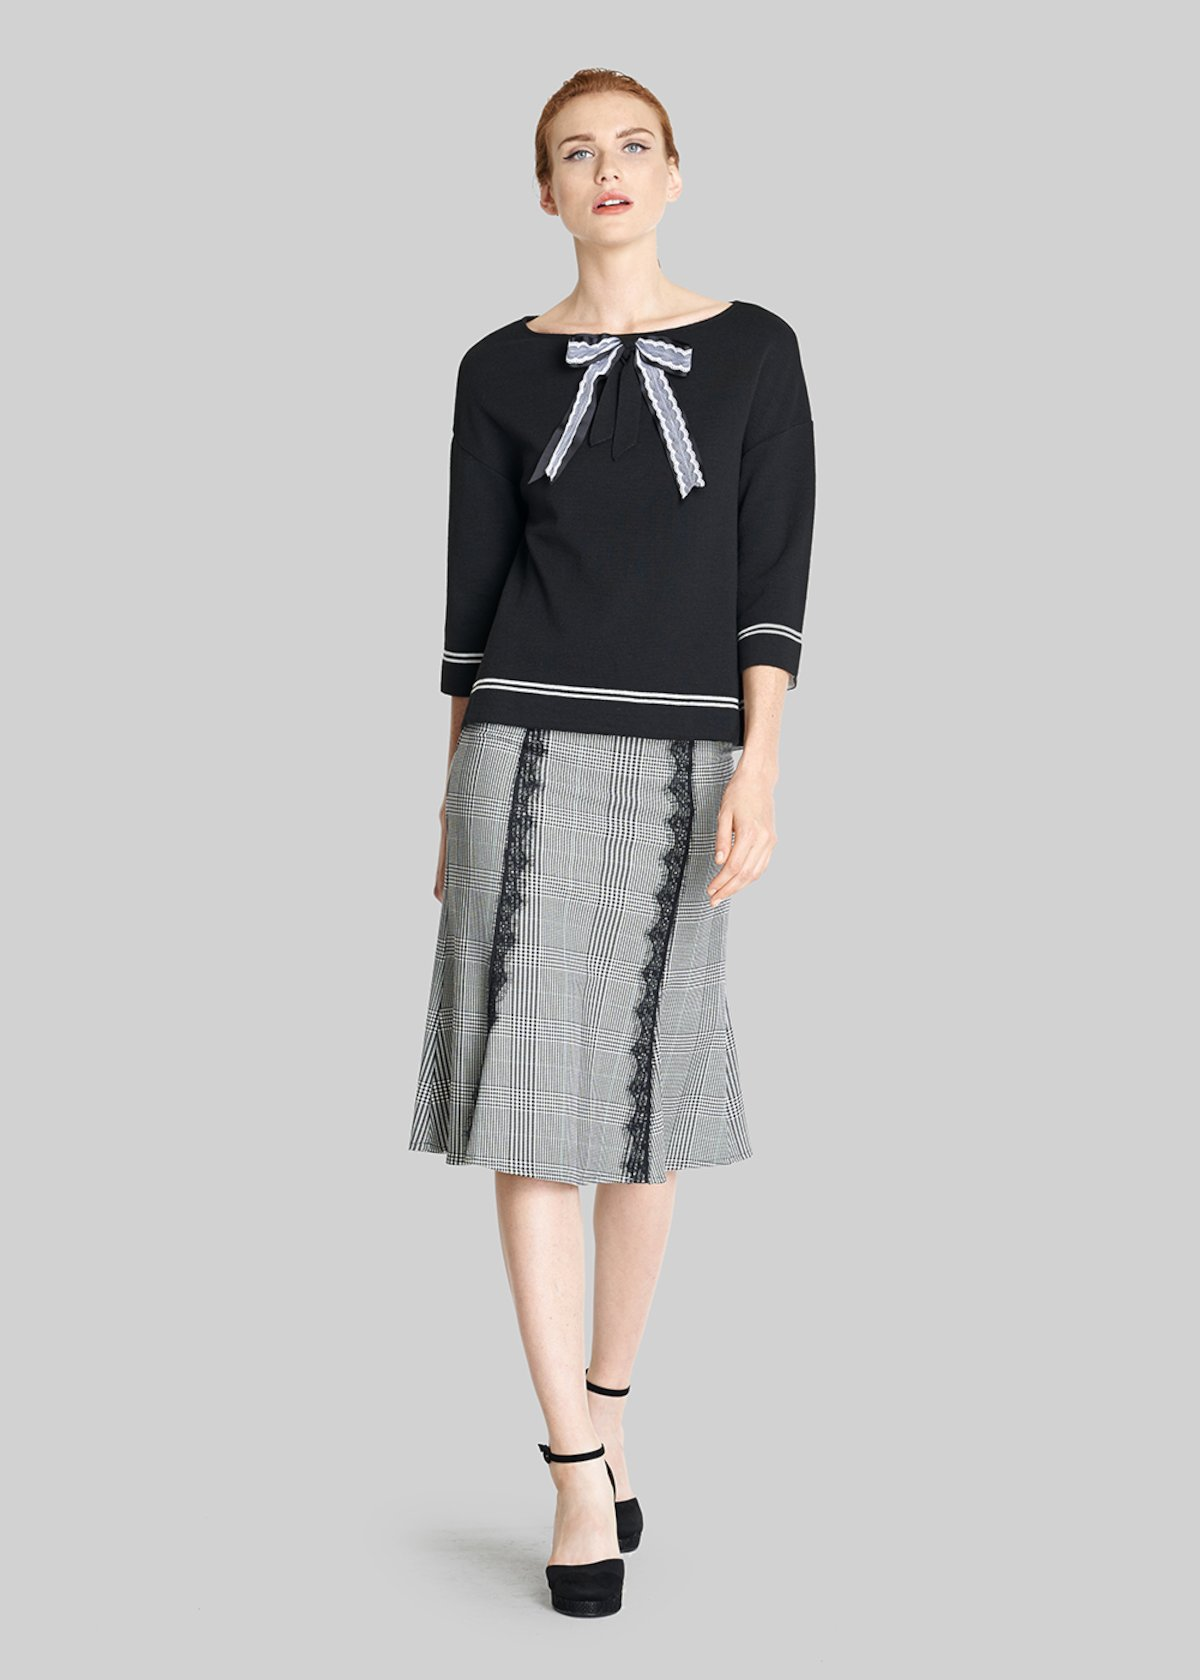 Marily grosgrain bow detail sweater - Black White Fantasia - Woman - Category image